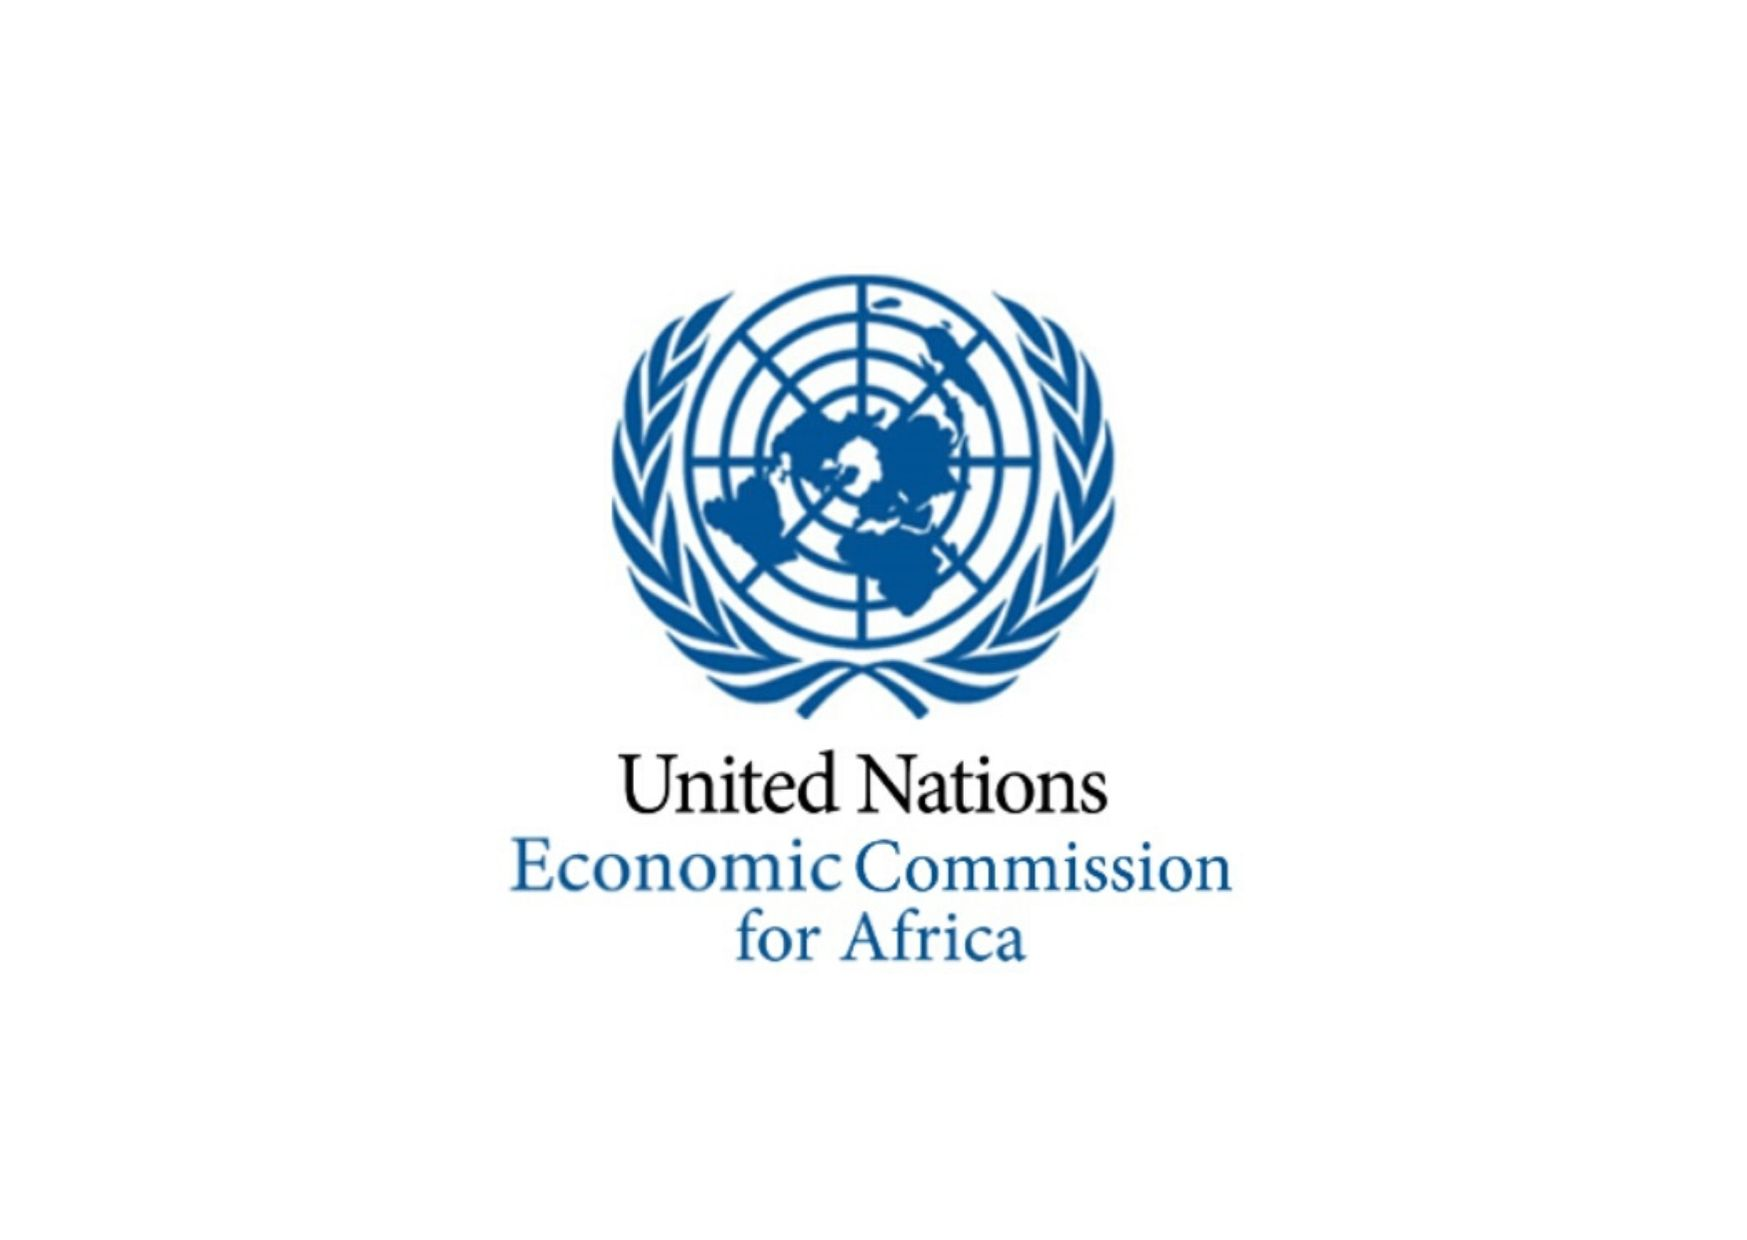 The un economic commission for africa signs long term contract with impactpool 55cac909 4bb1 48f2 998b 060dab82d095